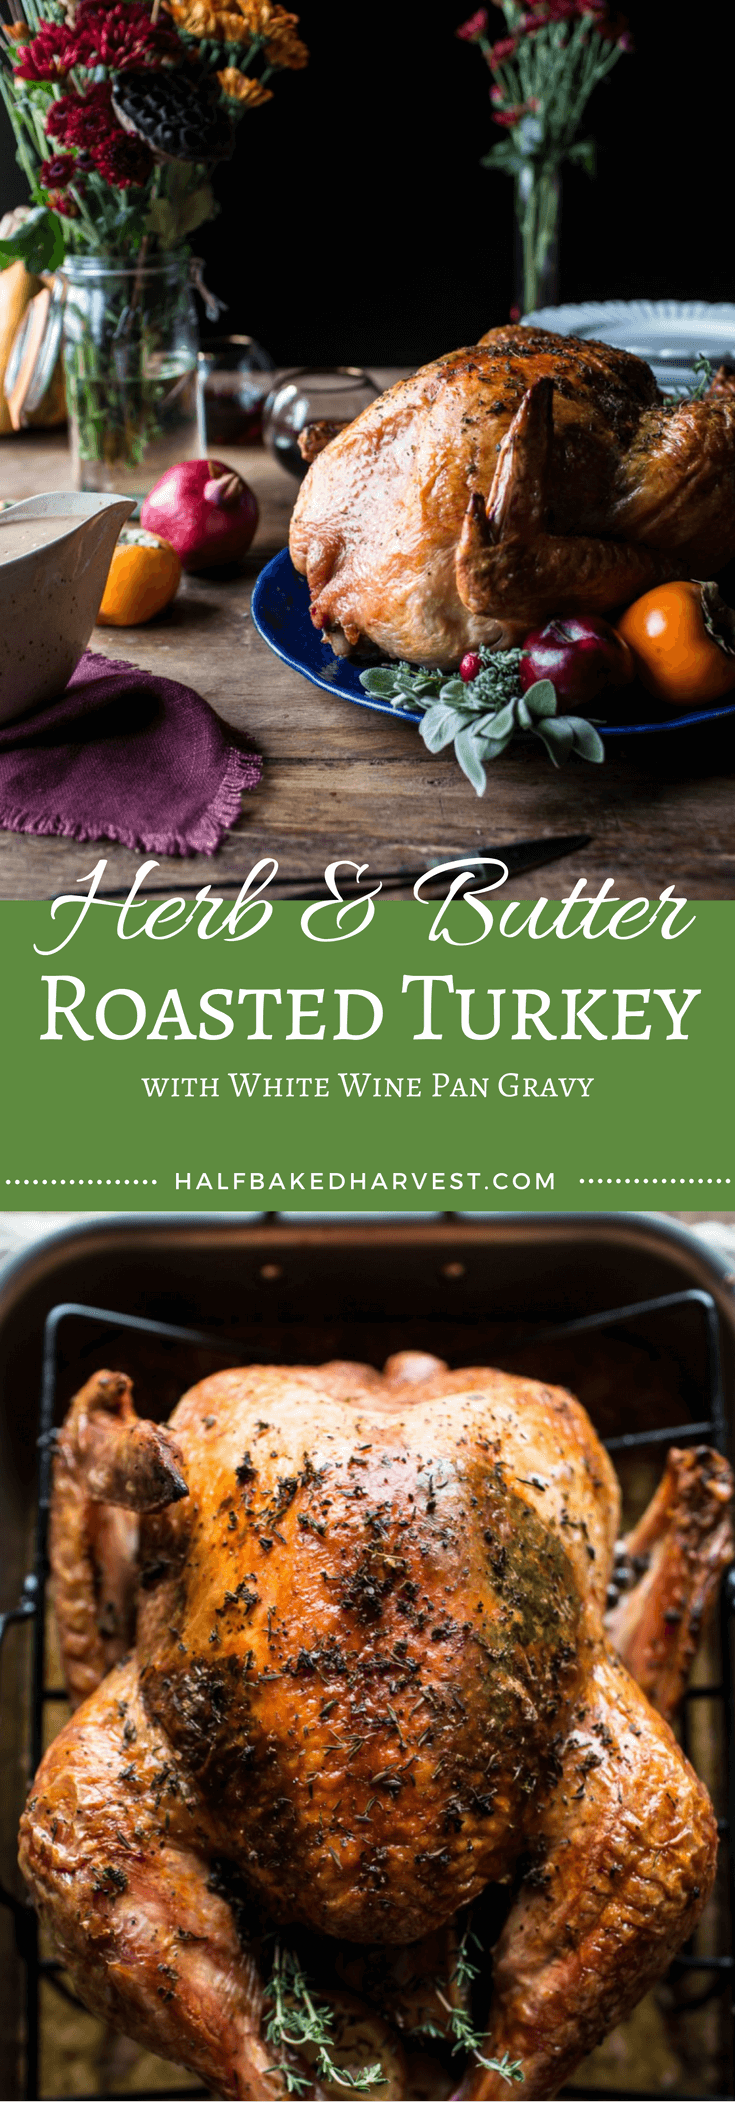 Photo of Herb and Butter Roasted Turkey | Half Baked Harvest